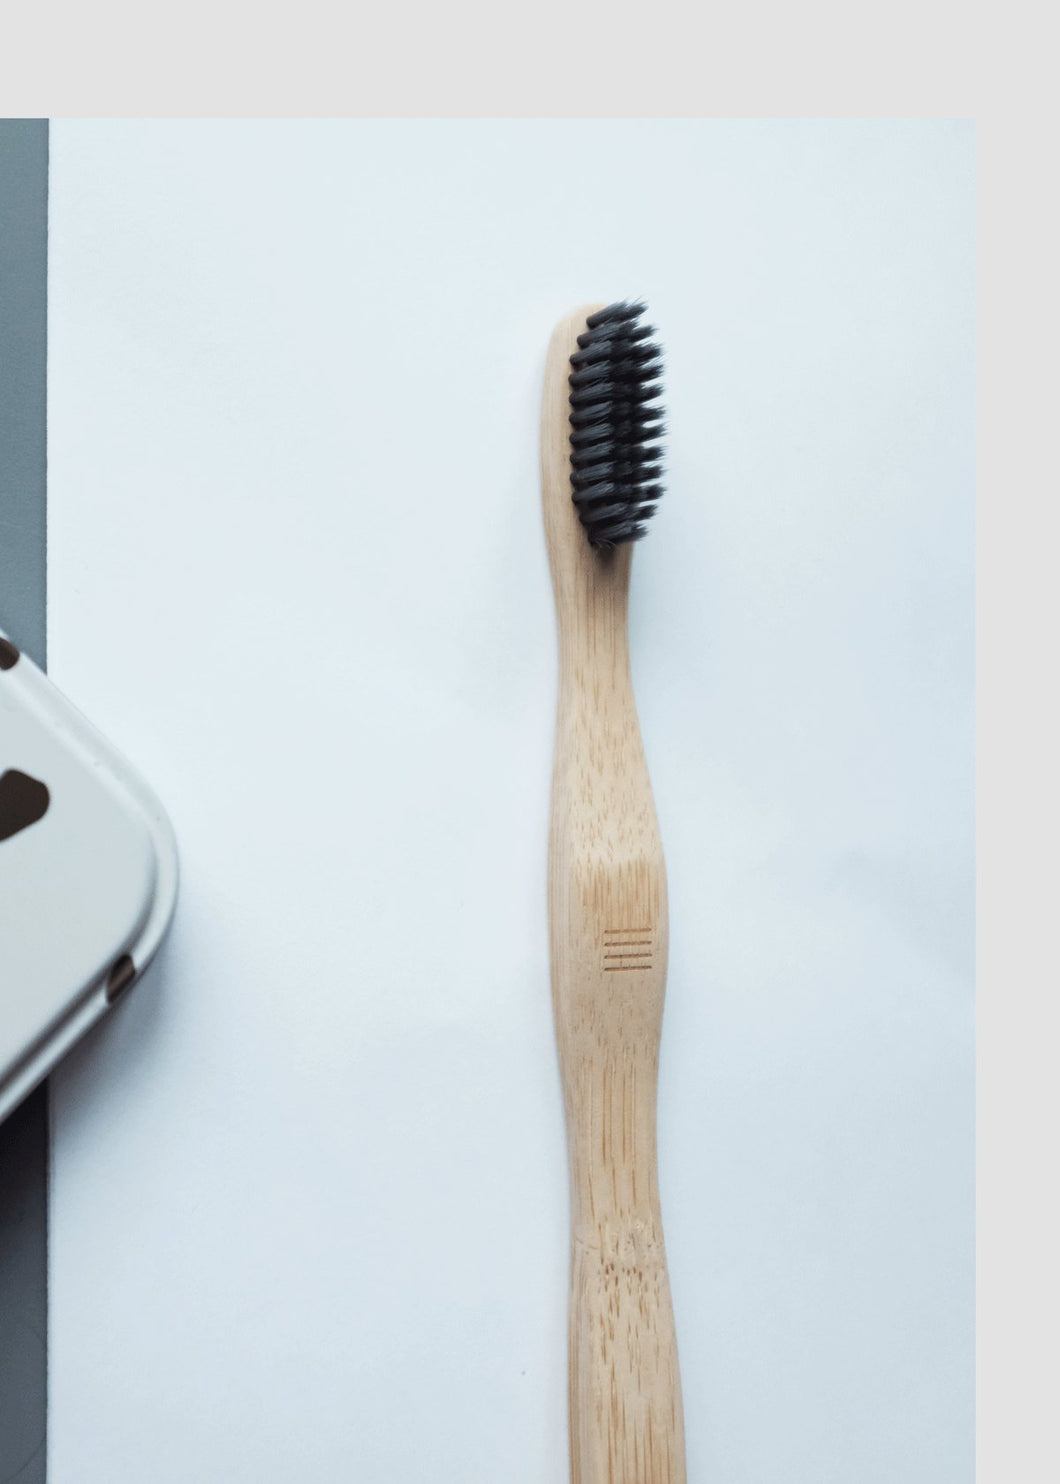 Bamboo Black Charcoal Toothbrush